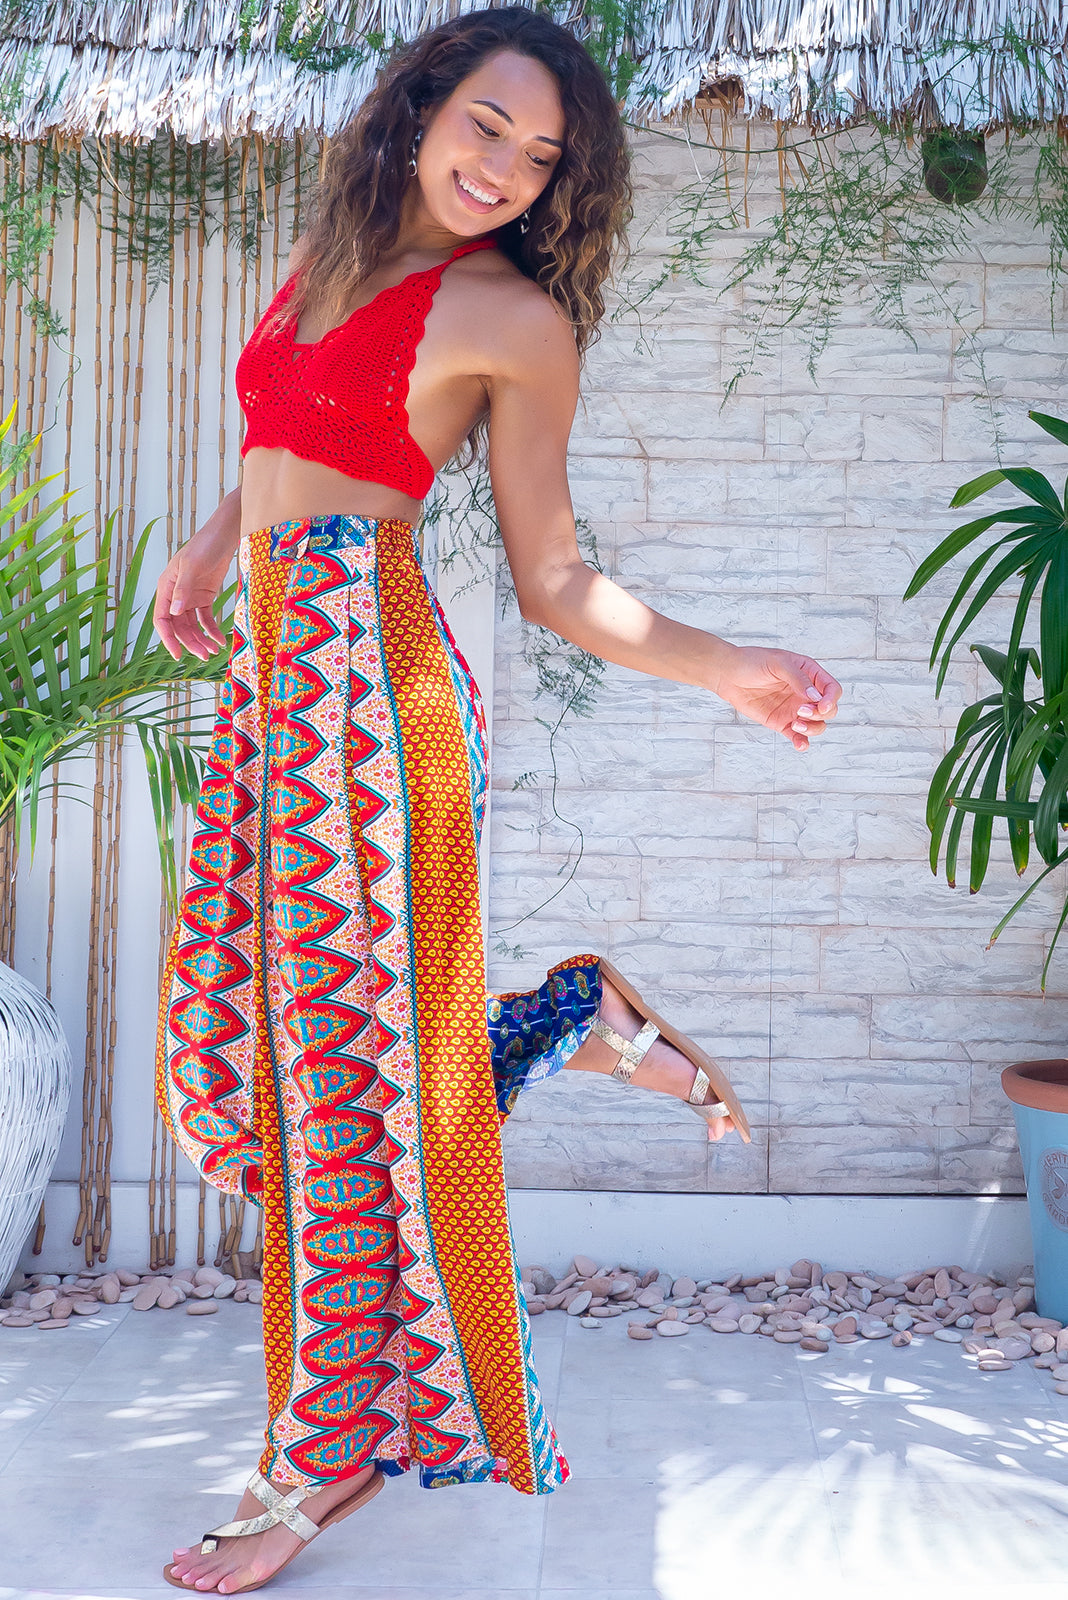 The Parakeet Circus Stripes Pants are comfortable wide legs pants featuring slip on design, belt loops with coconut button detail, side pockets and 100% viscose in bright and retro stripe print.